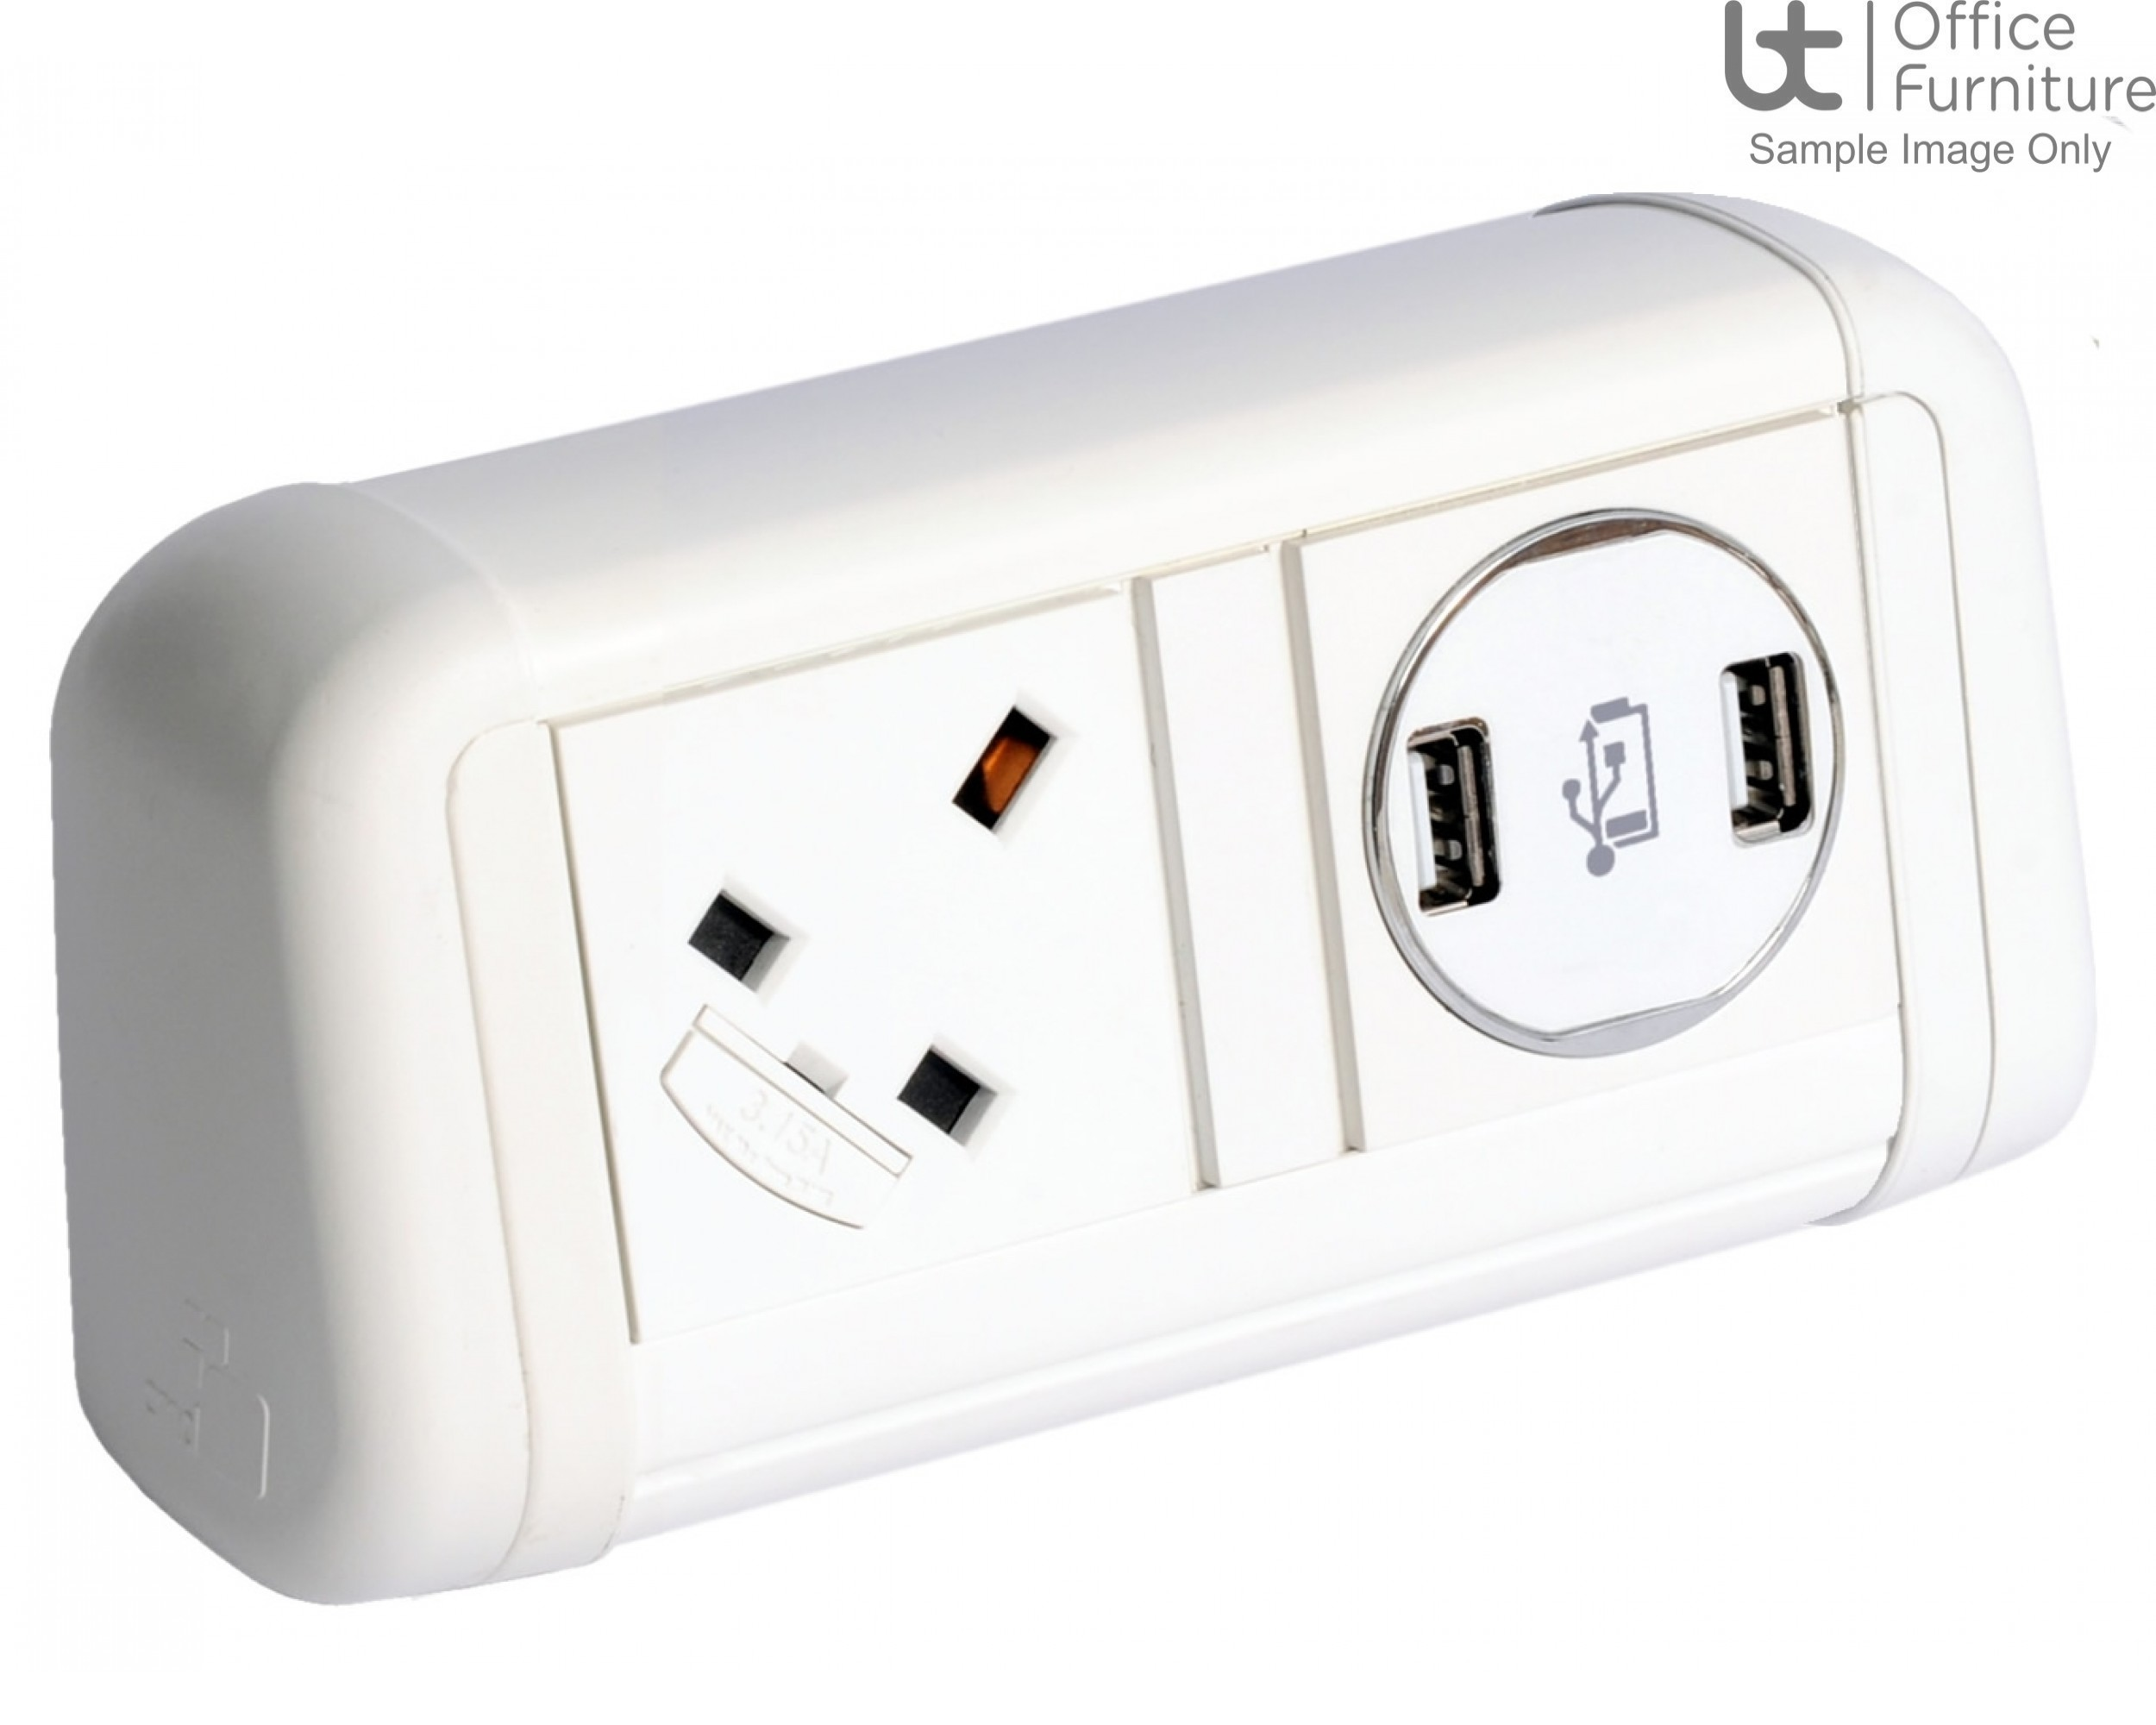 Contour 1 x power, 1 x twin USB Type A + Type C charger, 1m mains lead to 3-pole connector